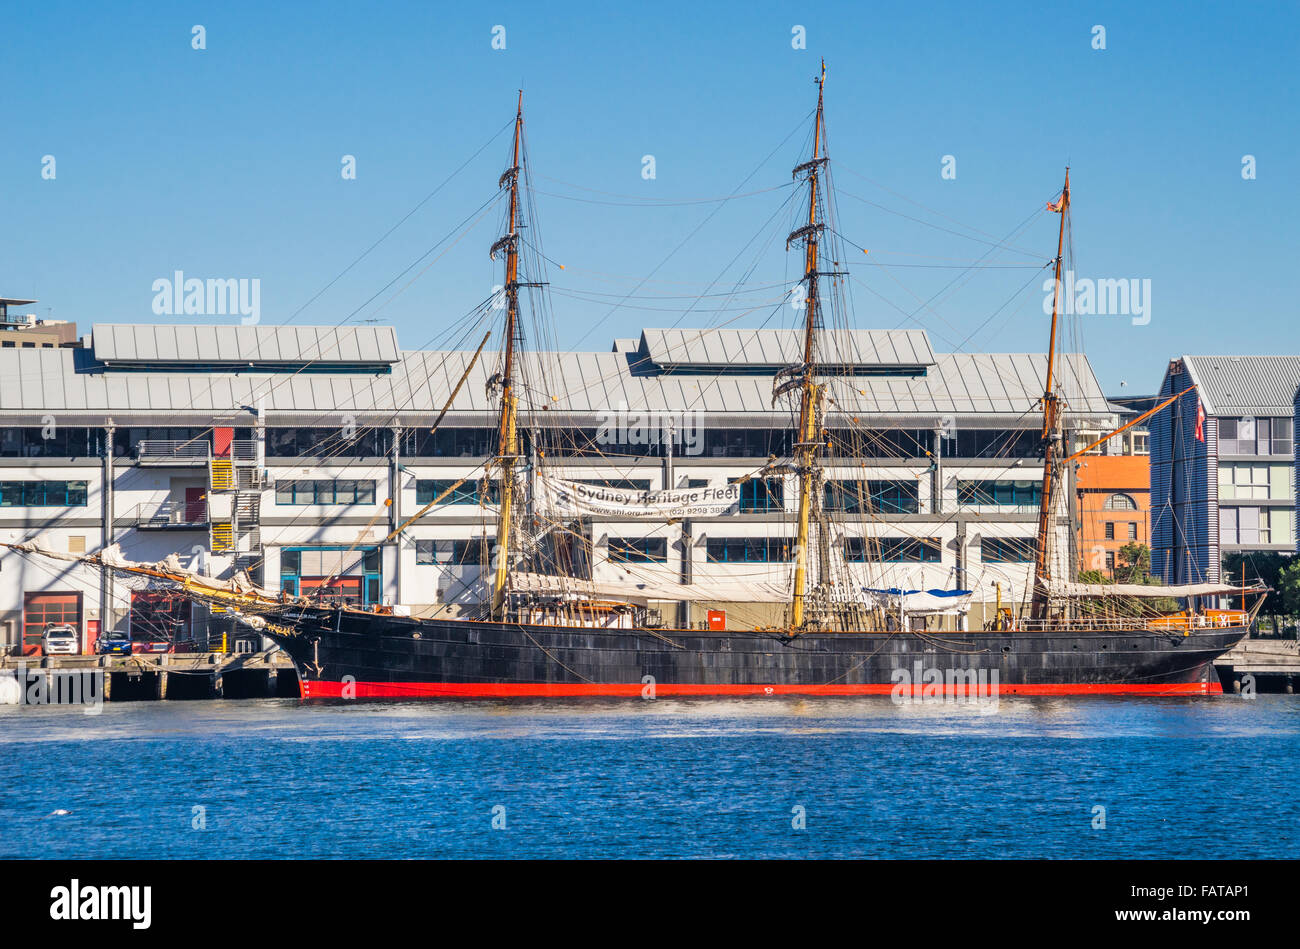 Australia, New South Wales, Sydney, Darling Harbour, three-masted iron-hull barque James Craig of the Sydney Heritage - Stock Image